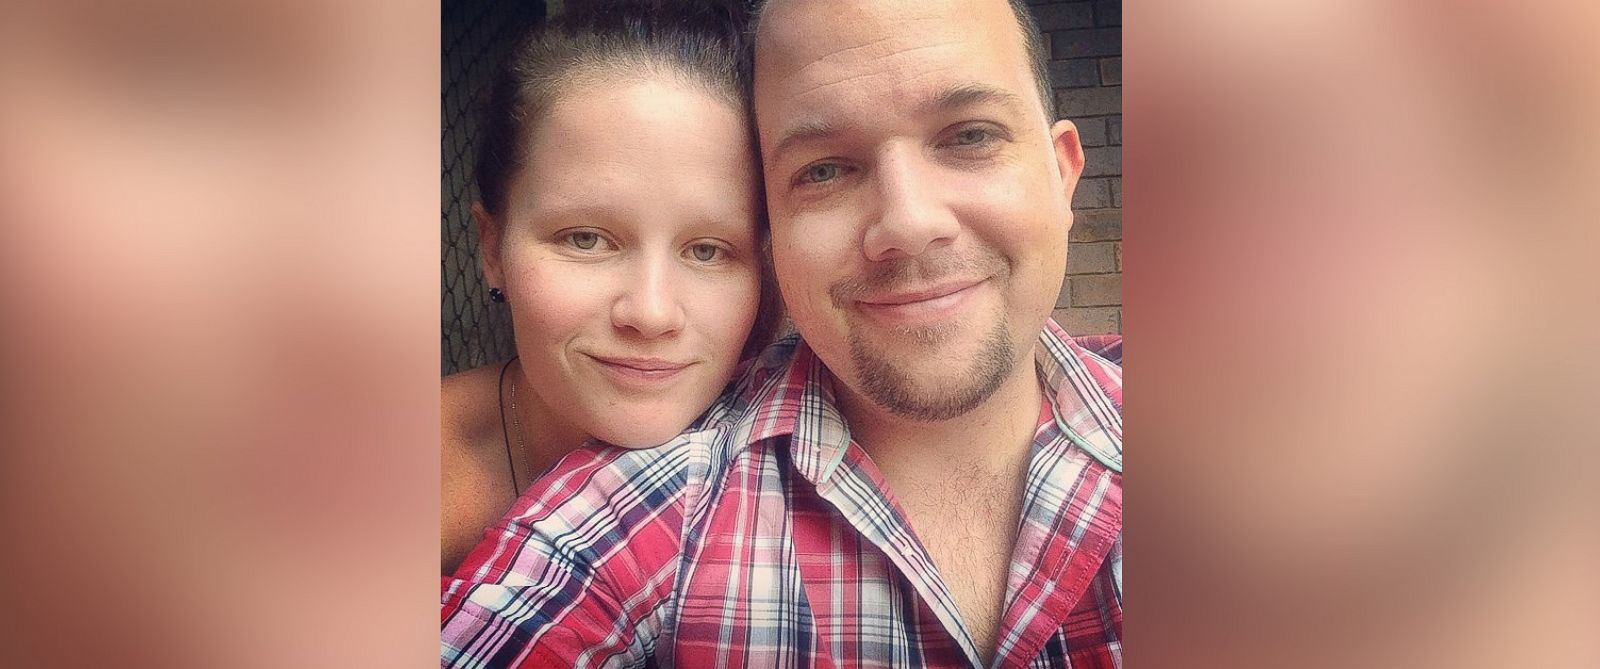 PHOTO: Jessica and Chris Offer said they were married for seven years before realizing Chis was on the autism spectrum.